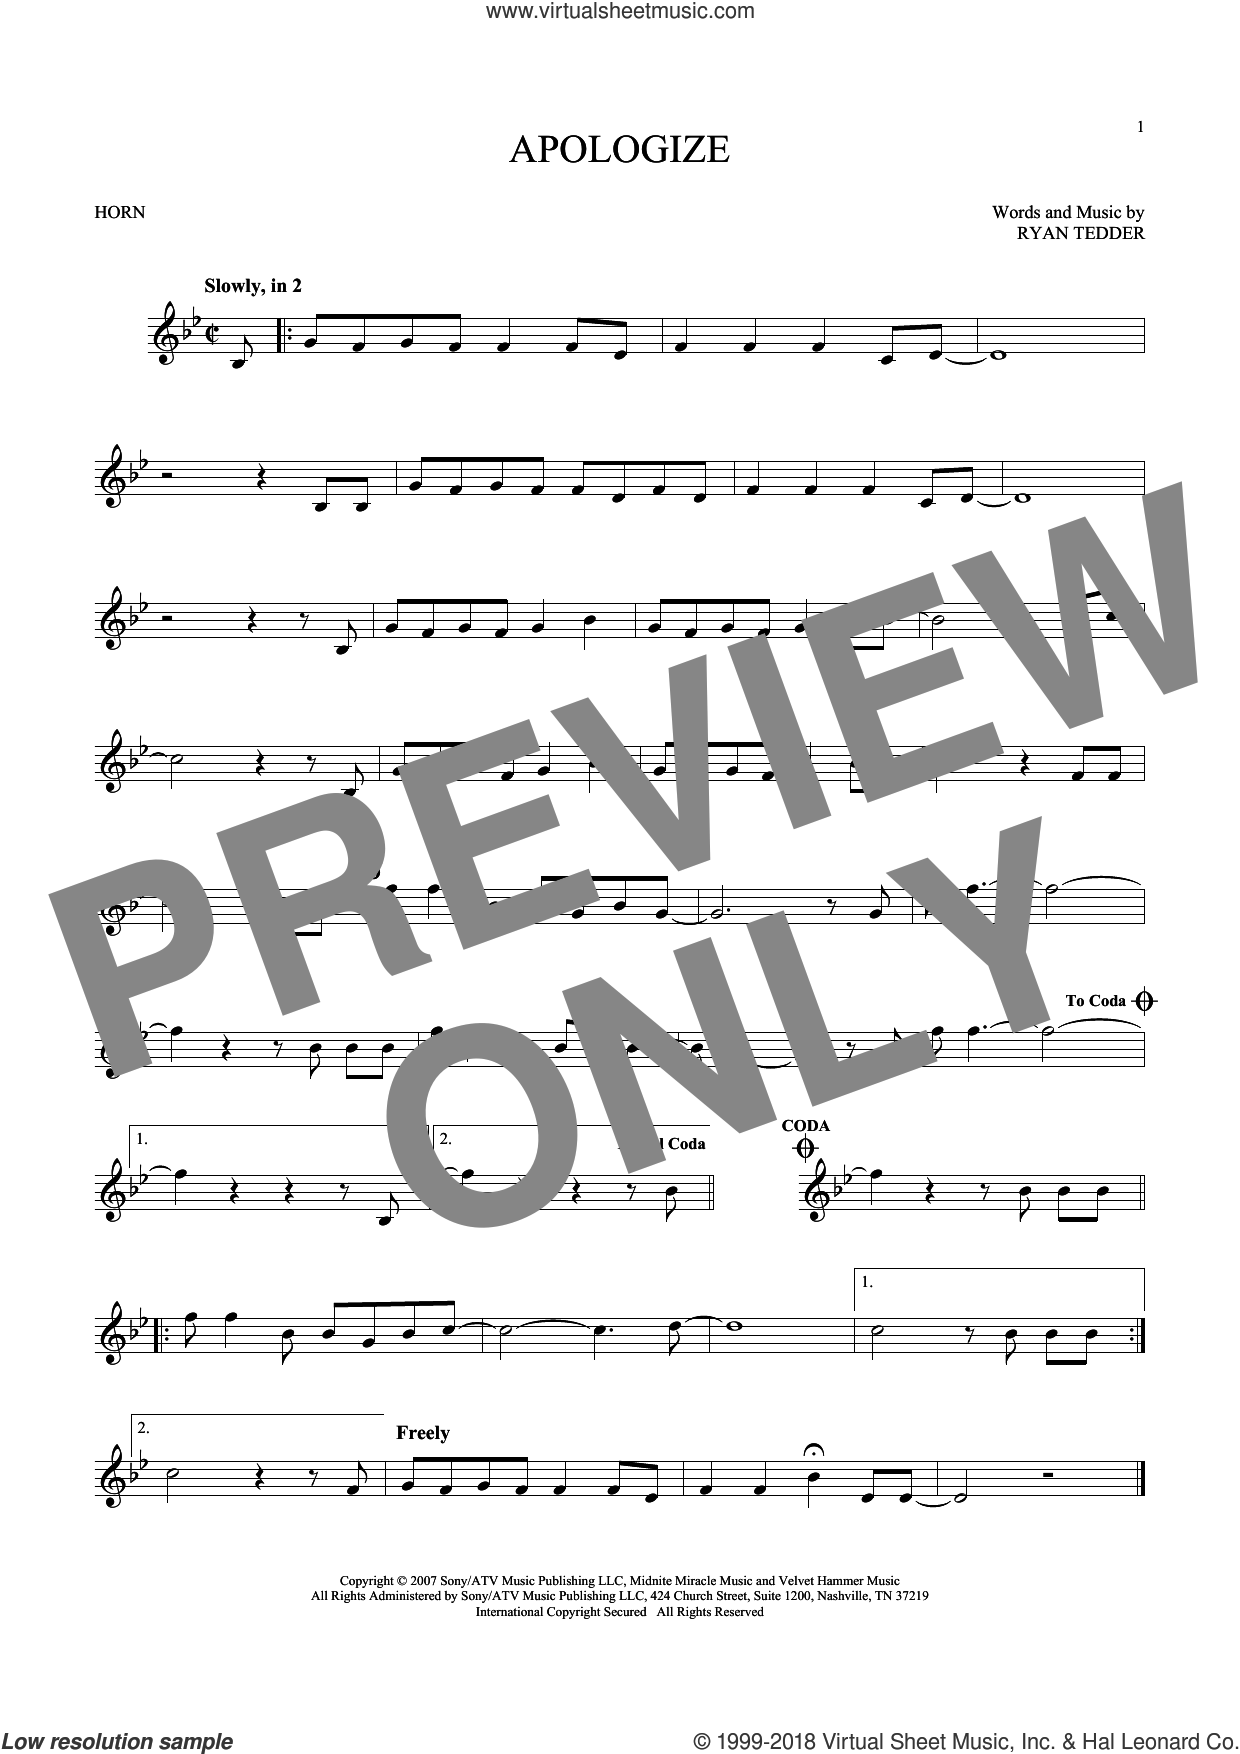 Apologize sheet music for horn solo by Timbaland featuring OneRepublic and Ryan Tedder, intermediate skill level